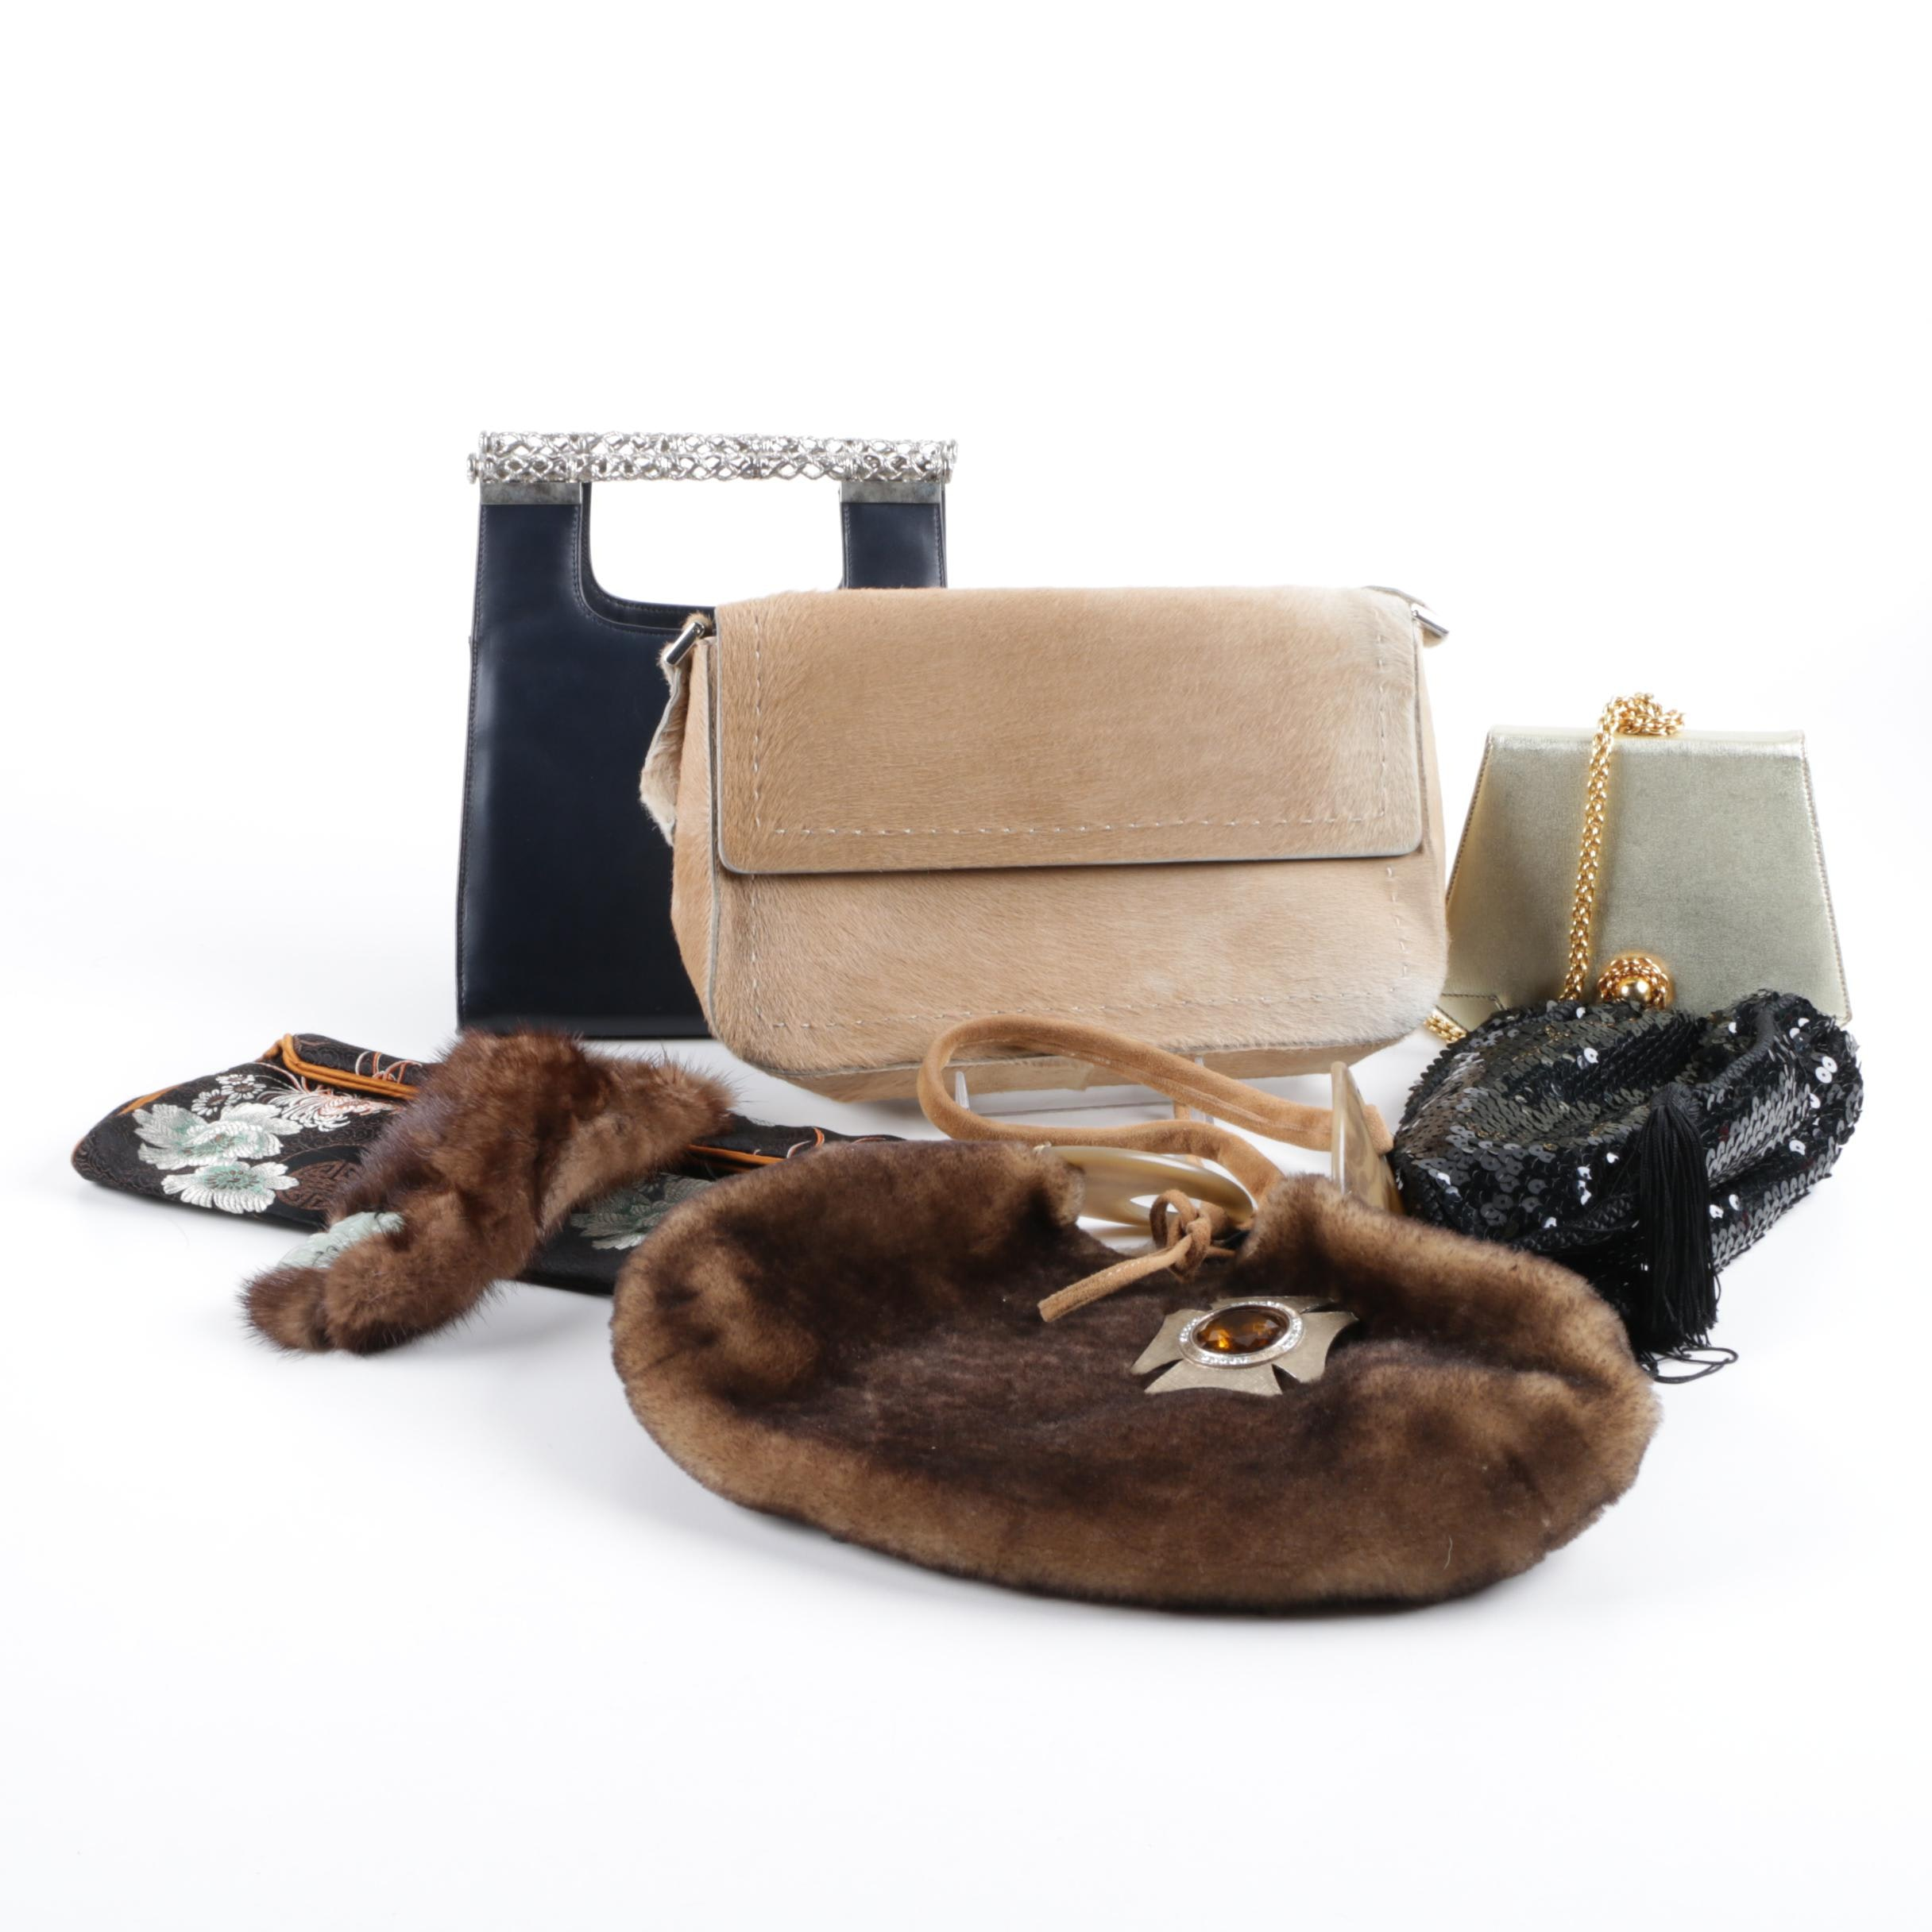 Handbags Including Pony Hair, Shearling and Mink Fur Styles